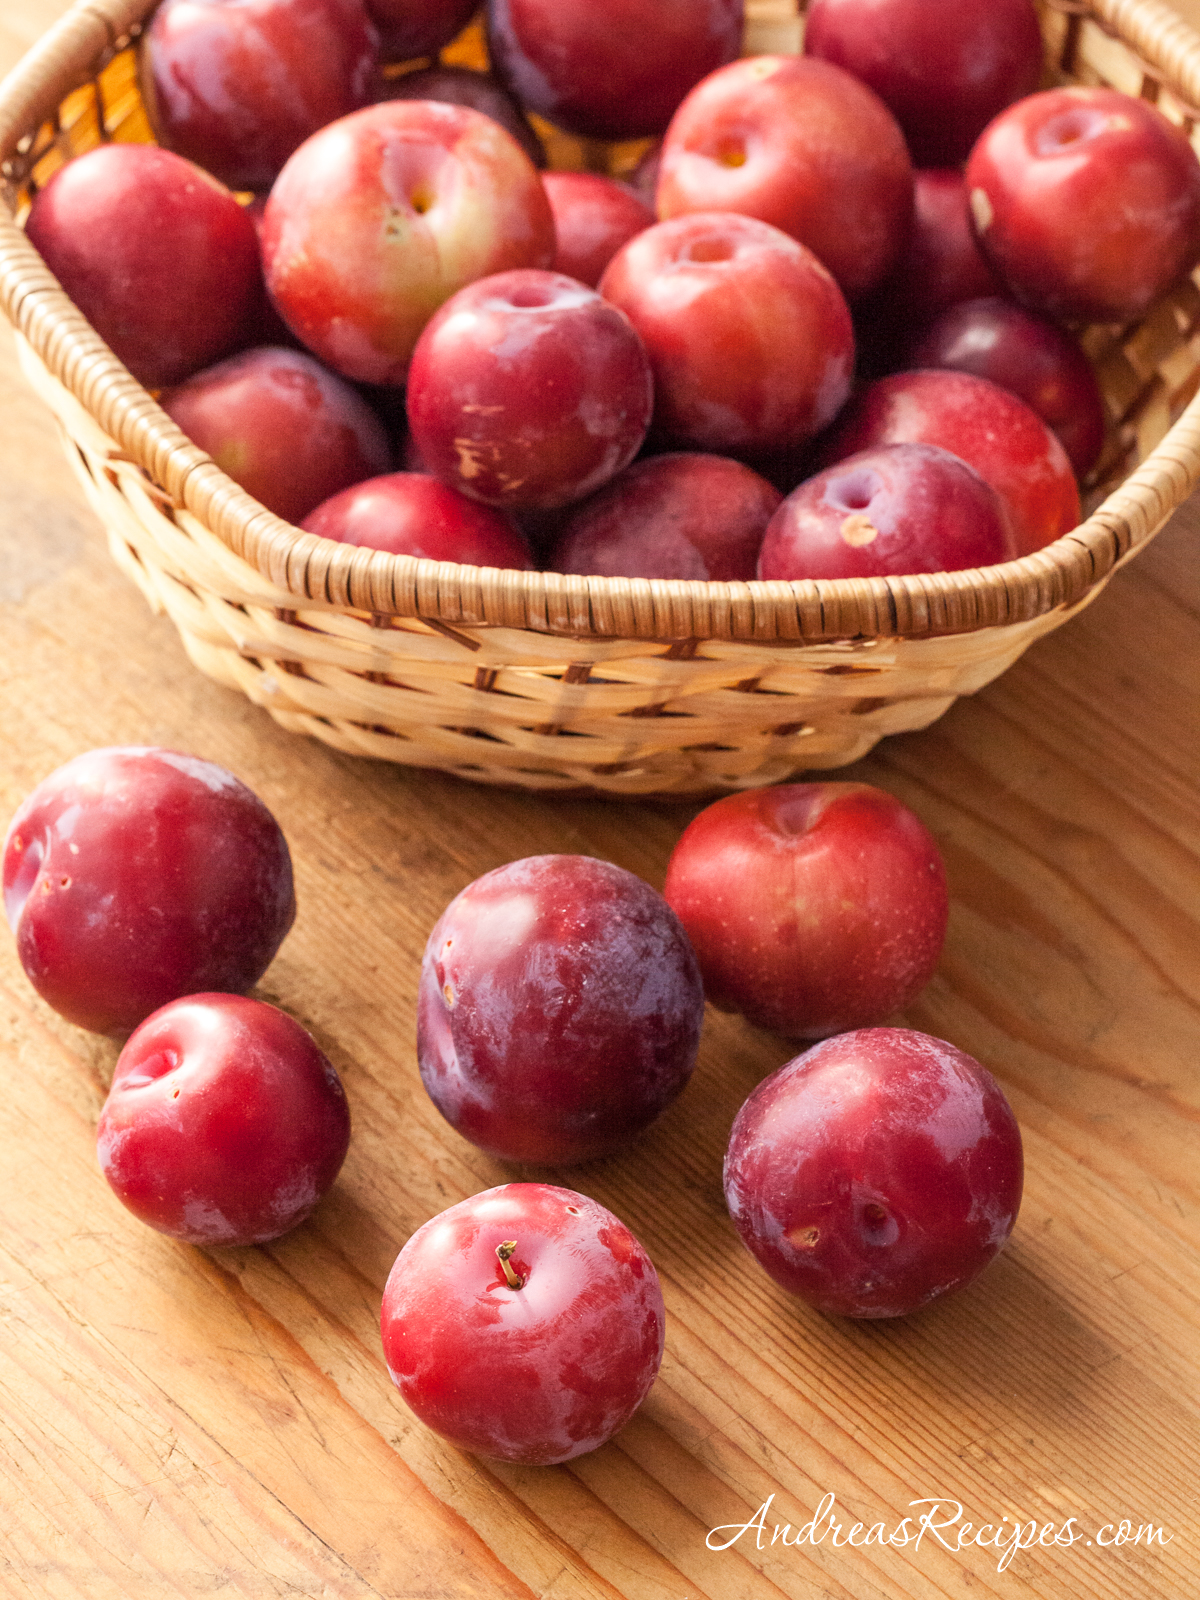 Plums from our home garden - Andrea Meyers